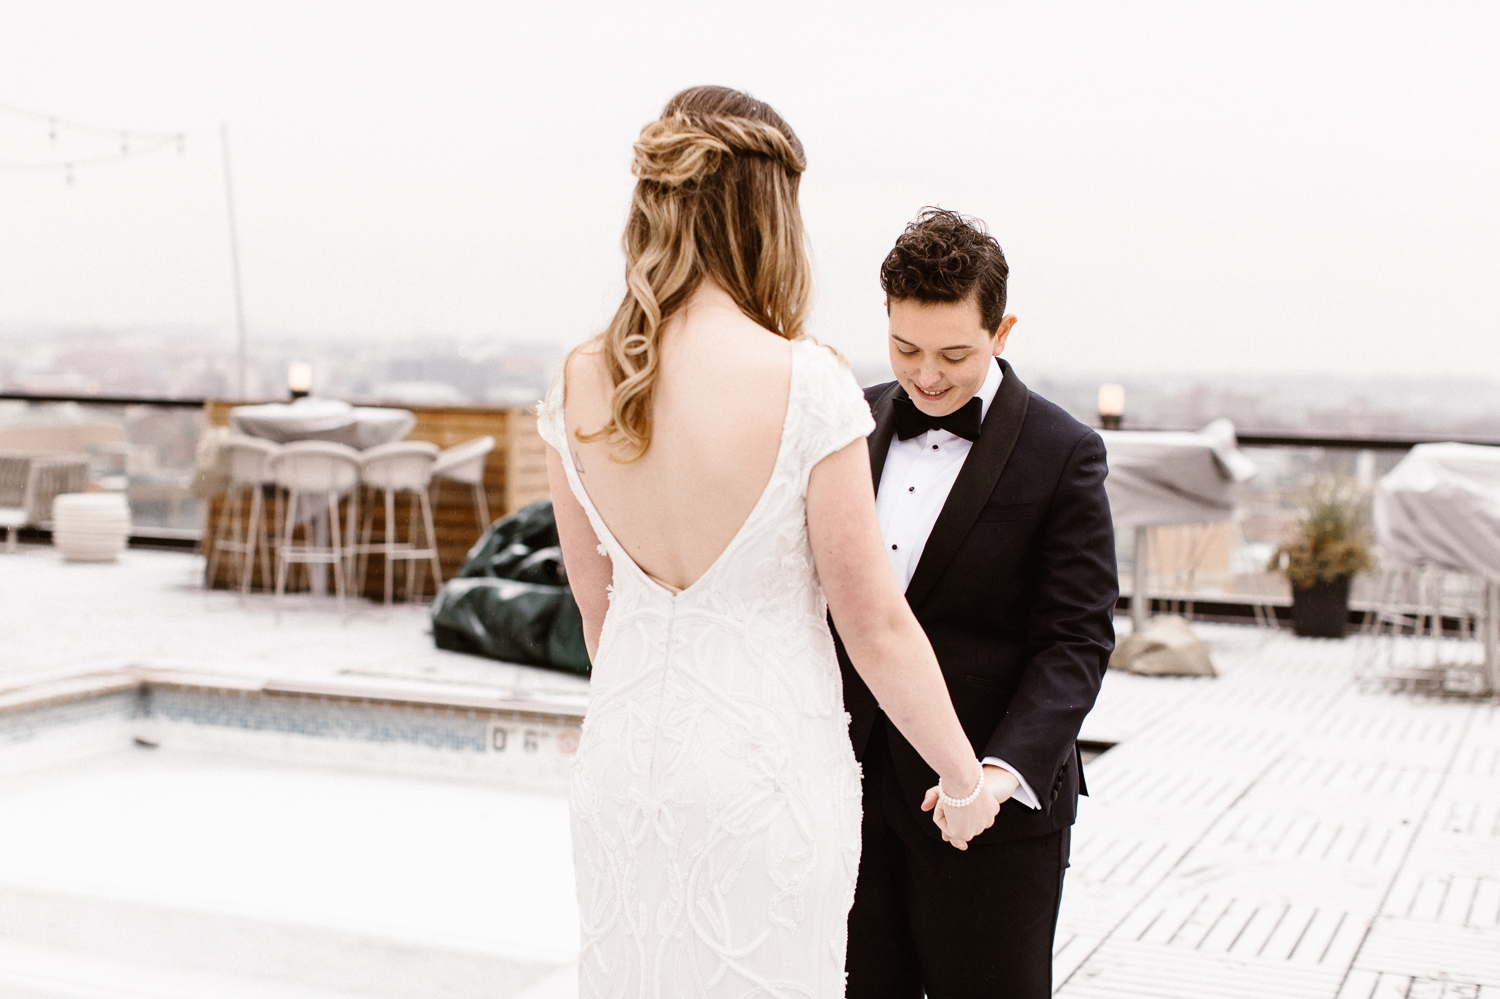 mason-and-rook-first-look-rooftop-josephine-butler-parks-wedding-photographer 55.jpg